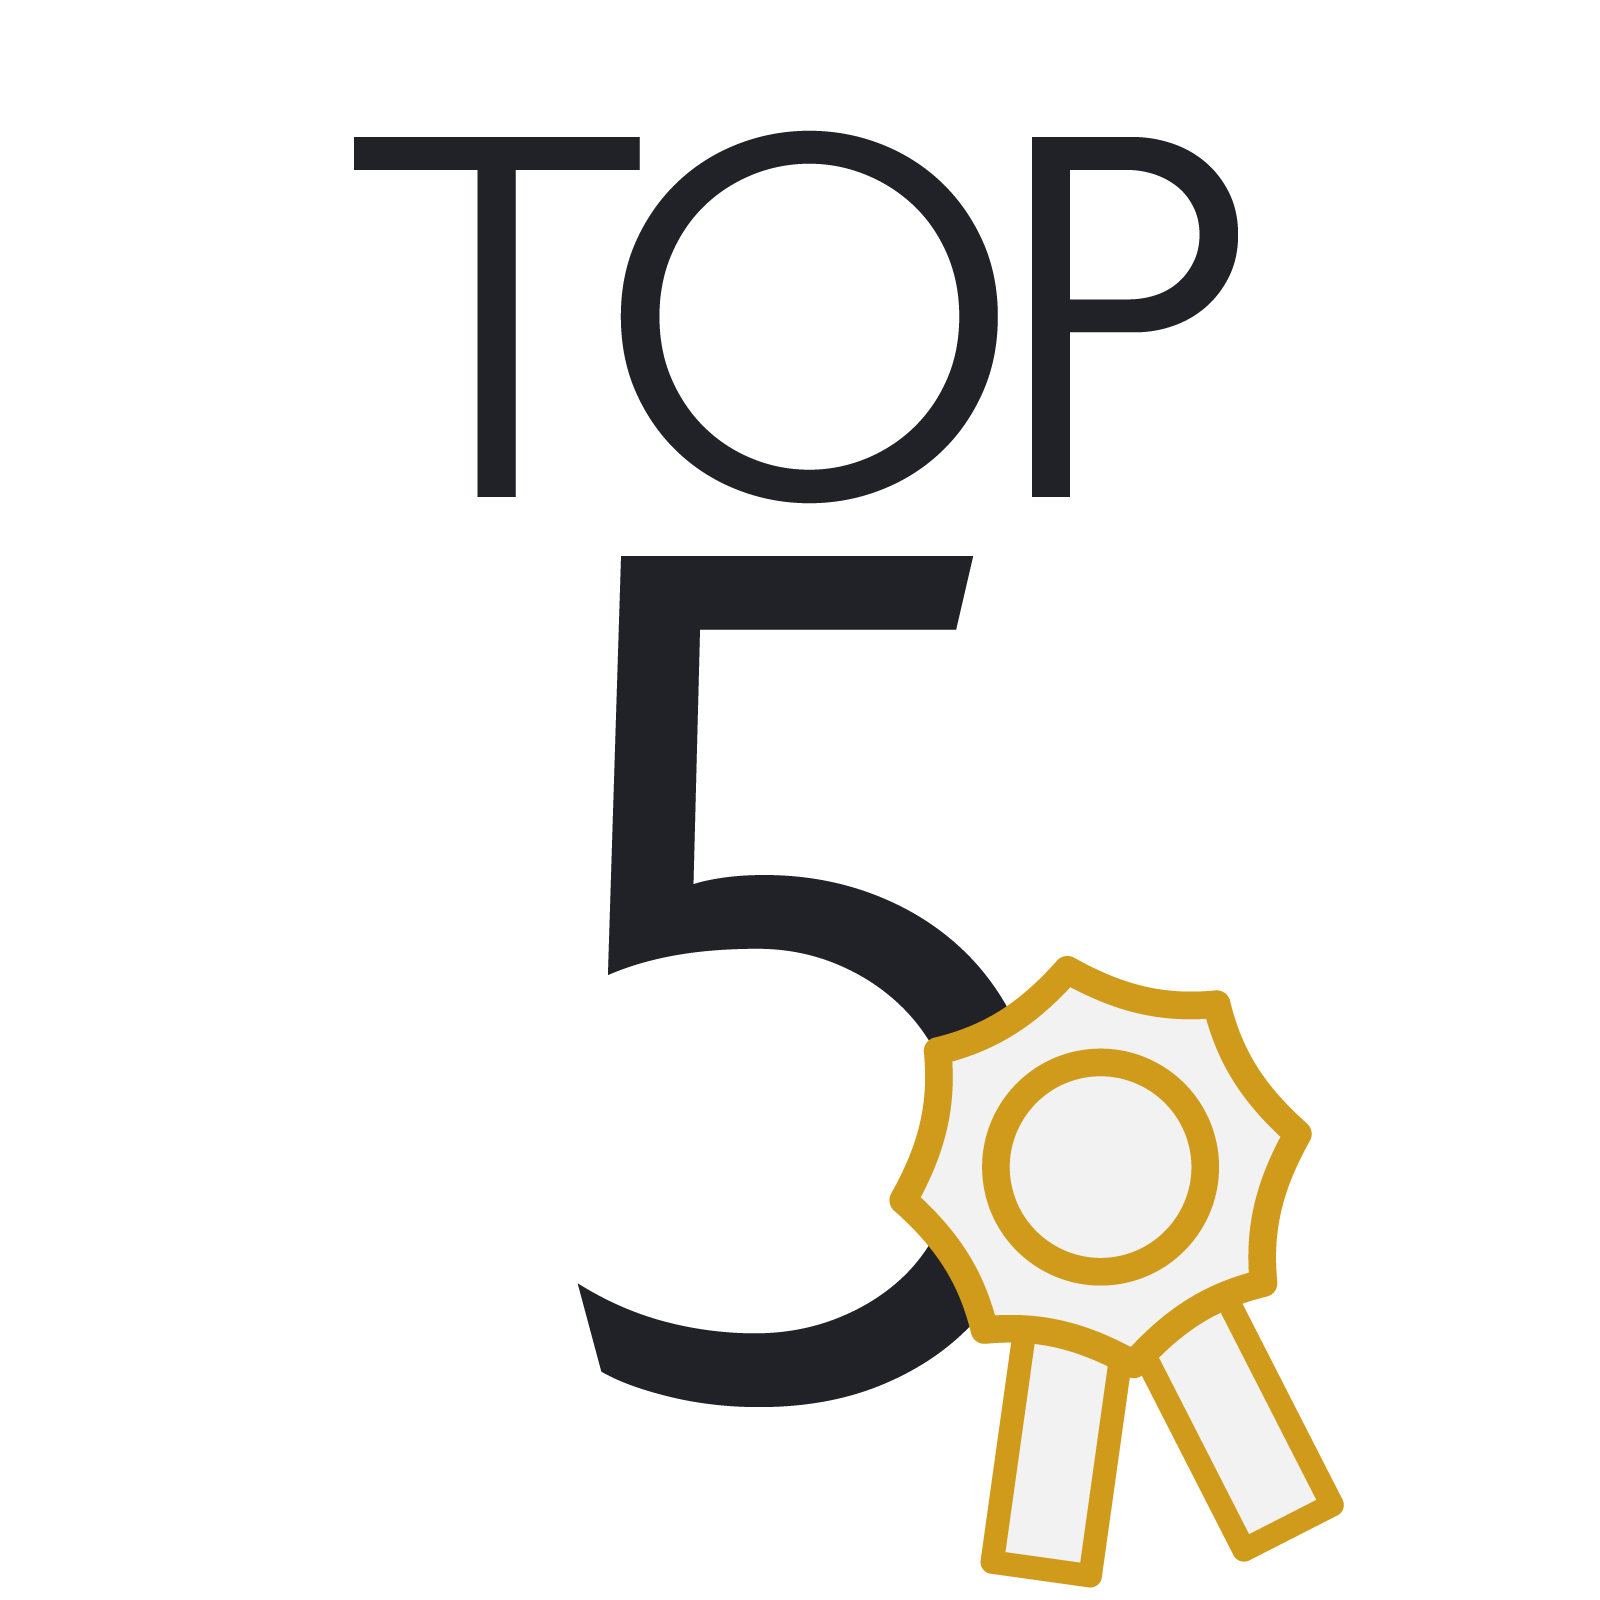 Top 5 in the UK image